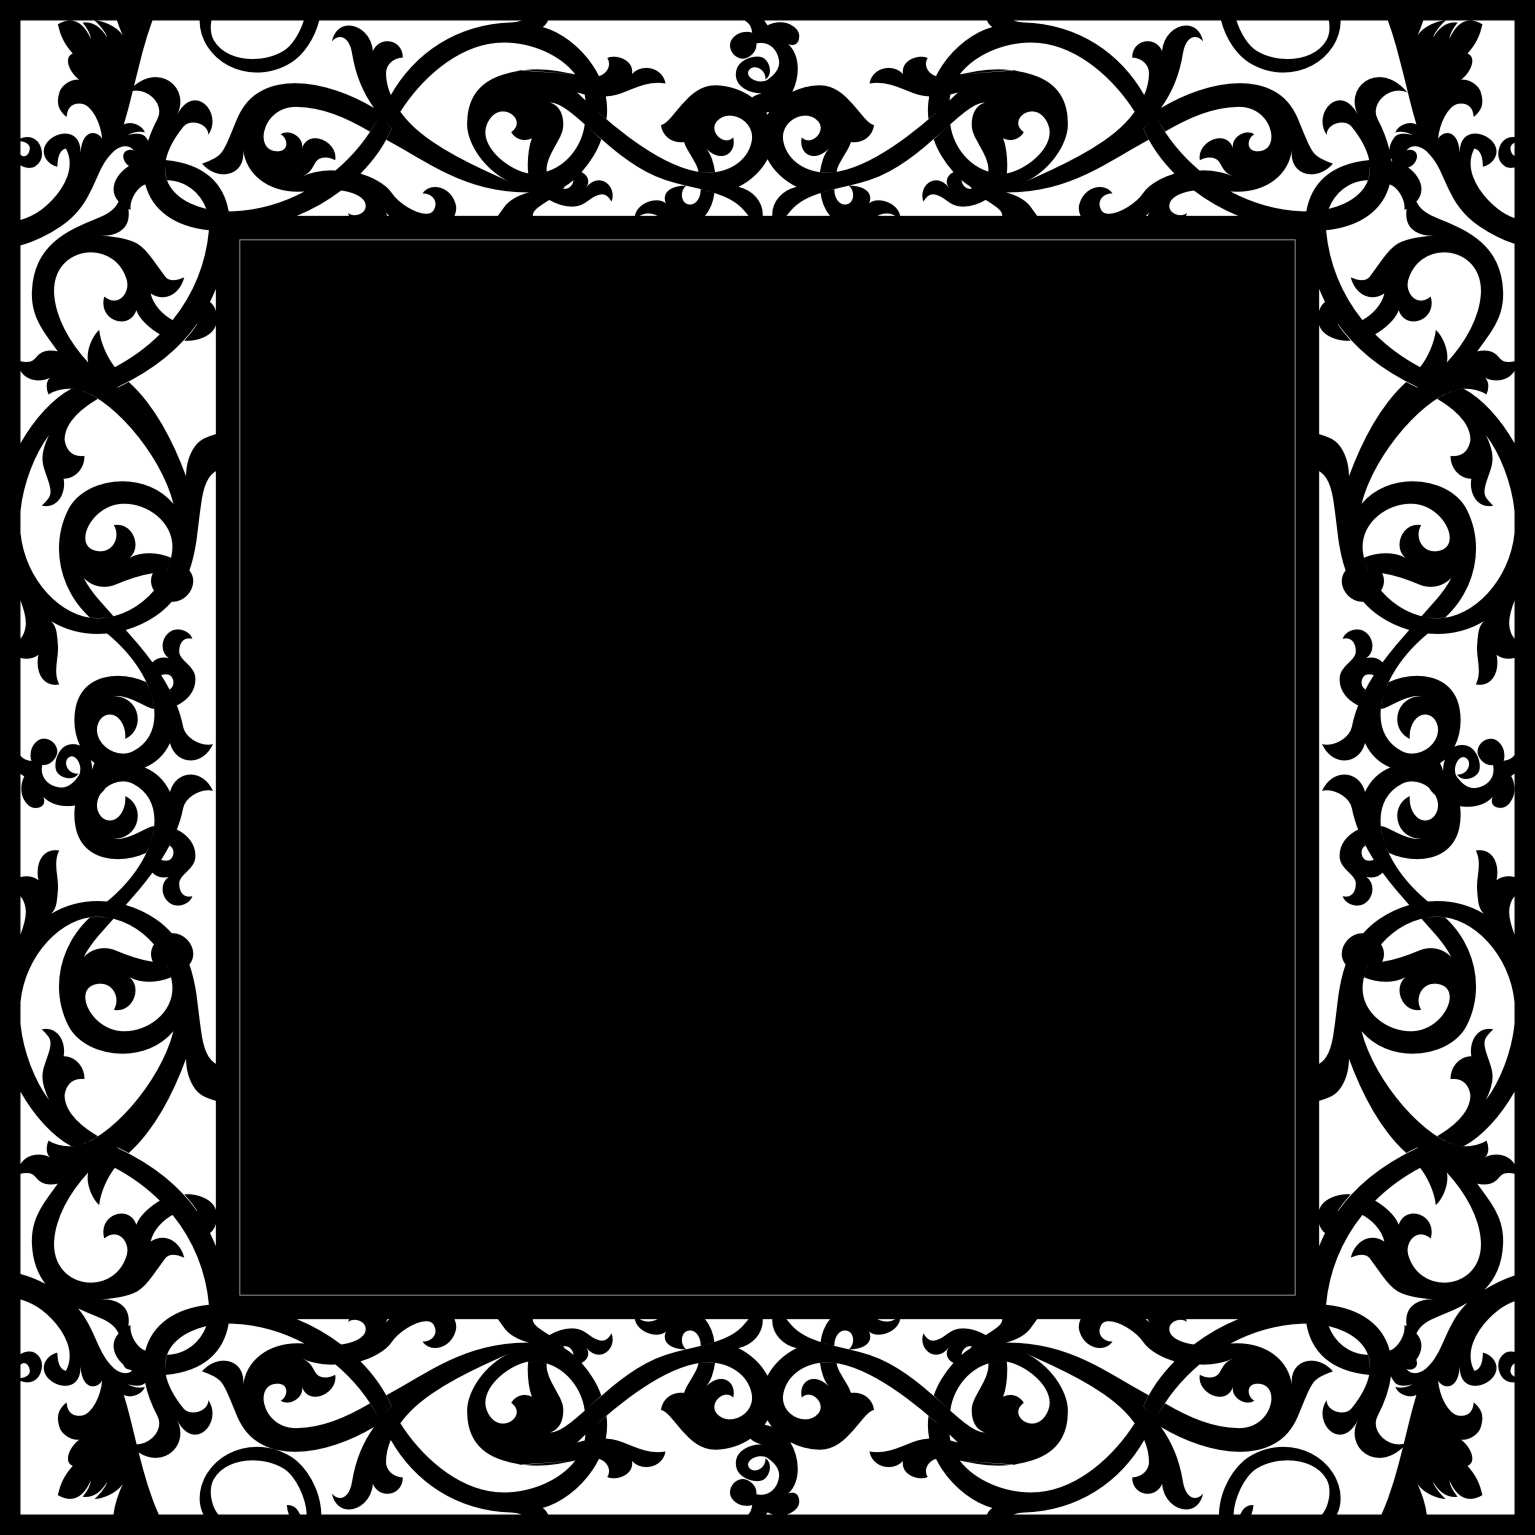 12 x 12 Wrought Iron 3 Frame sold individually